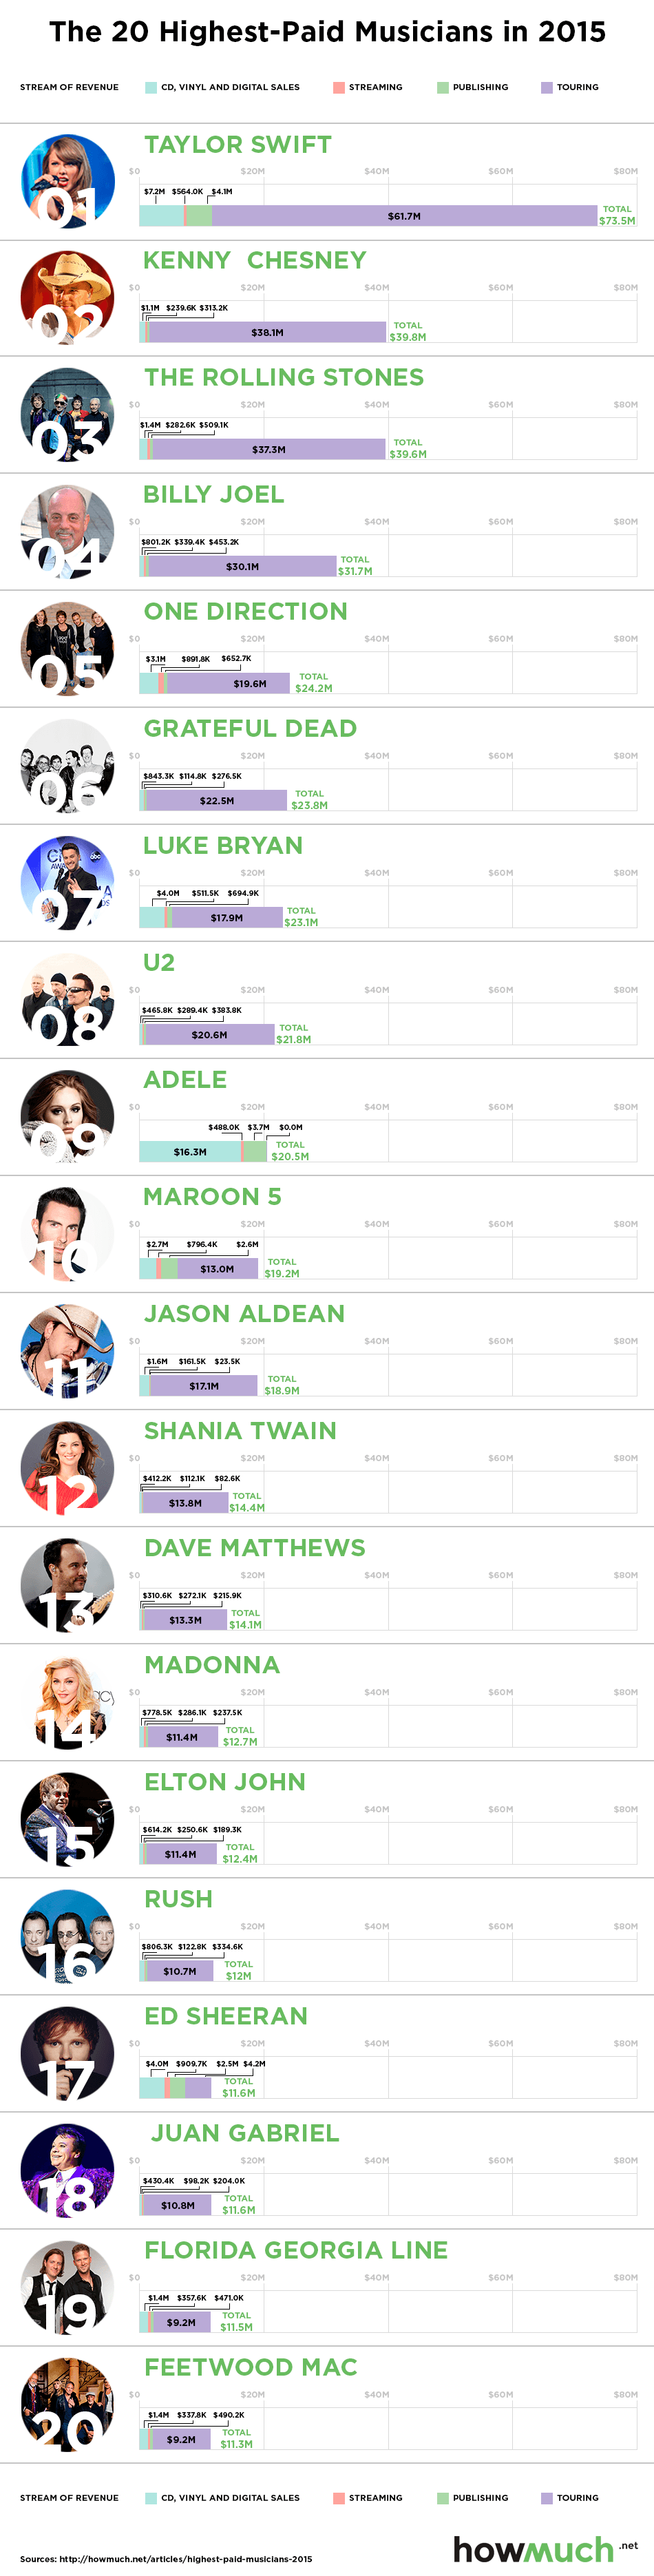 How the World's Top Pop Stars Make Their Money  |  from  howmuch.net